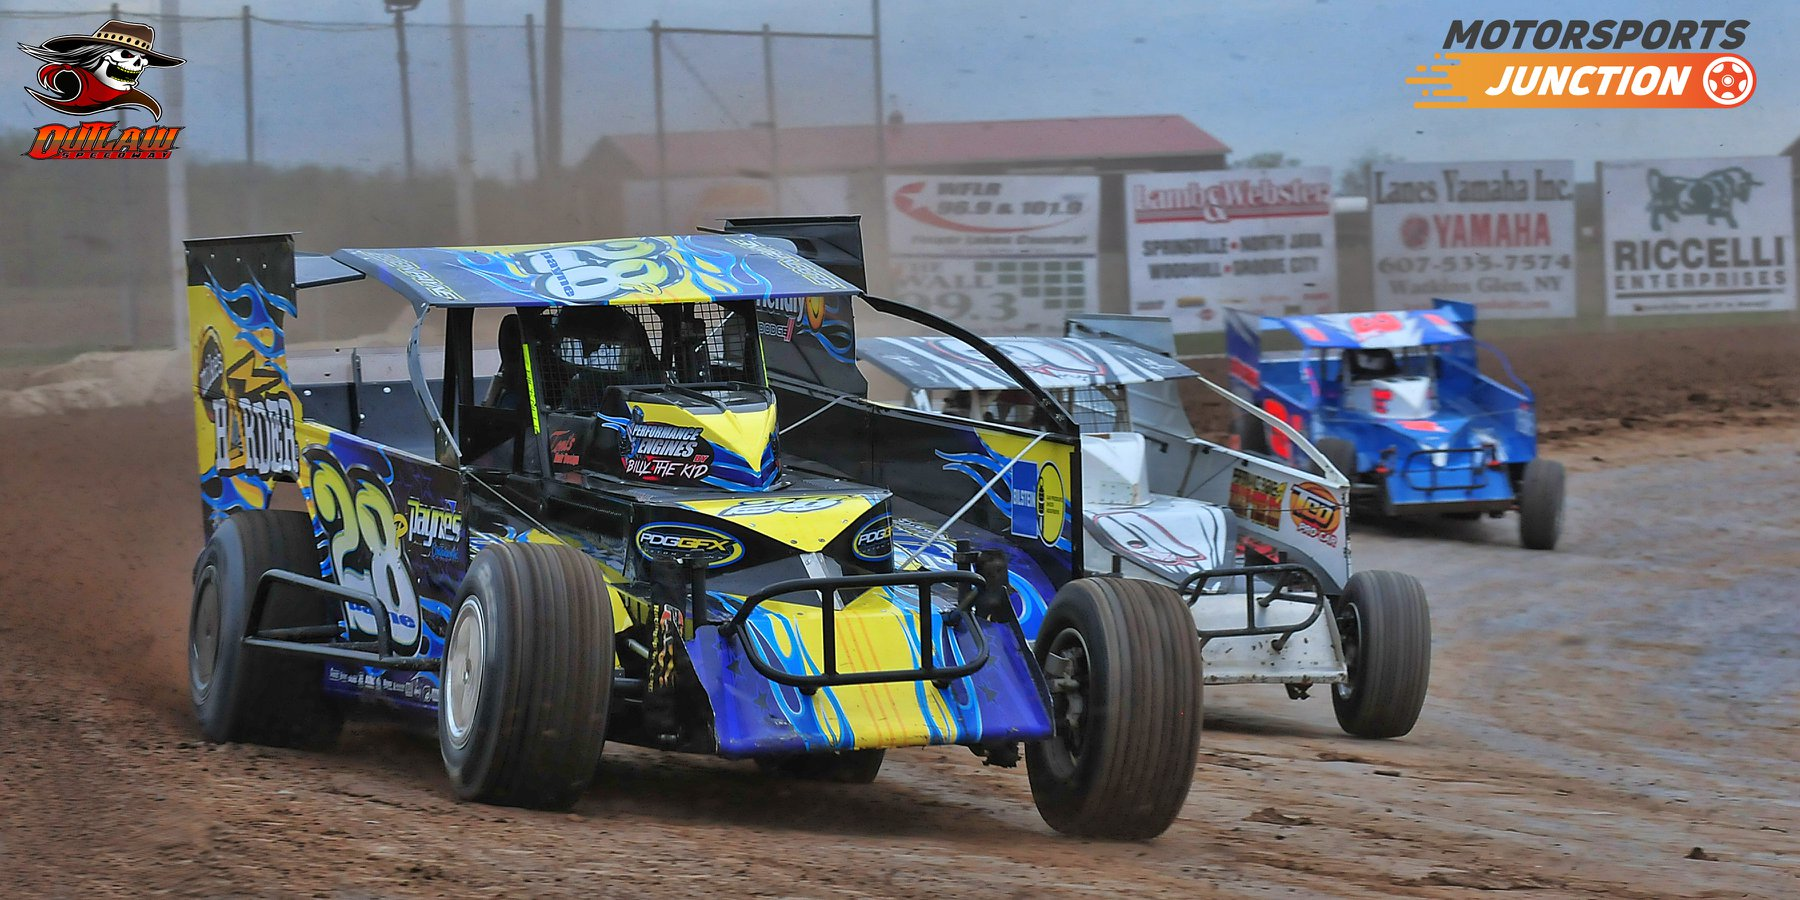 Action photo from Outlaw Speedway by Greg Mesler